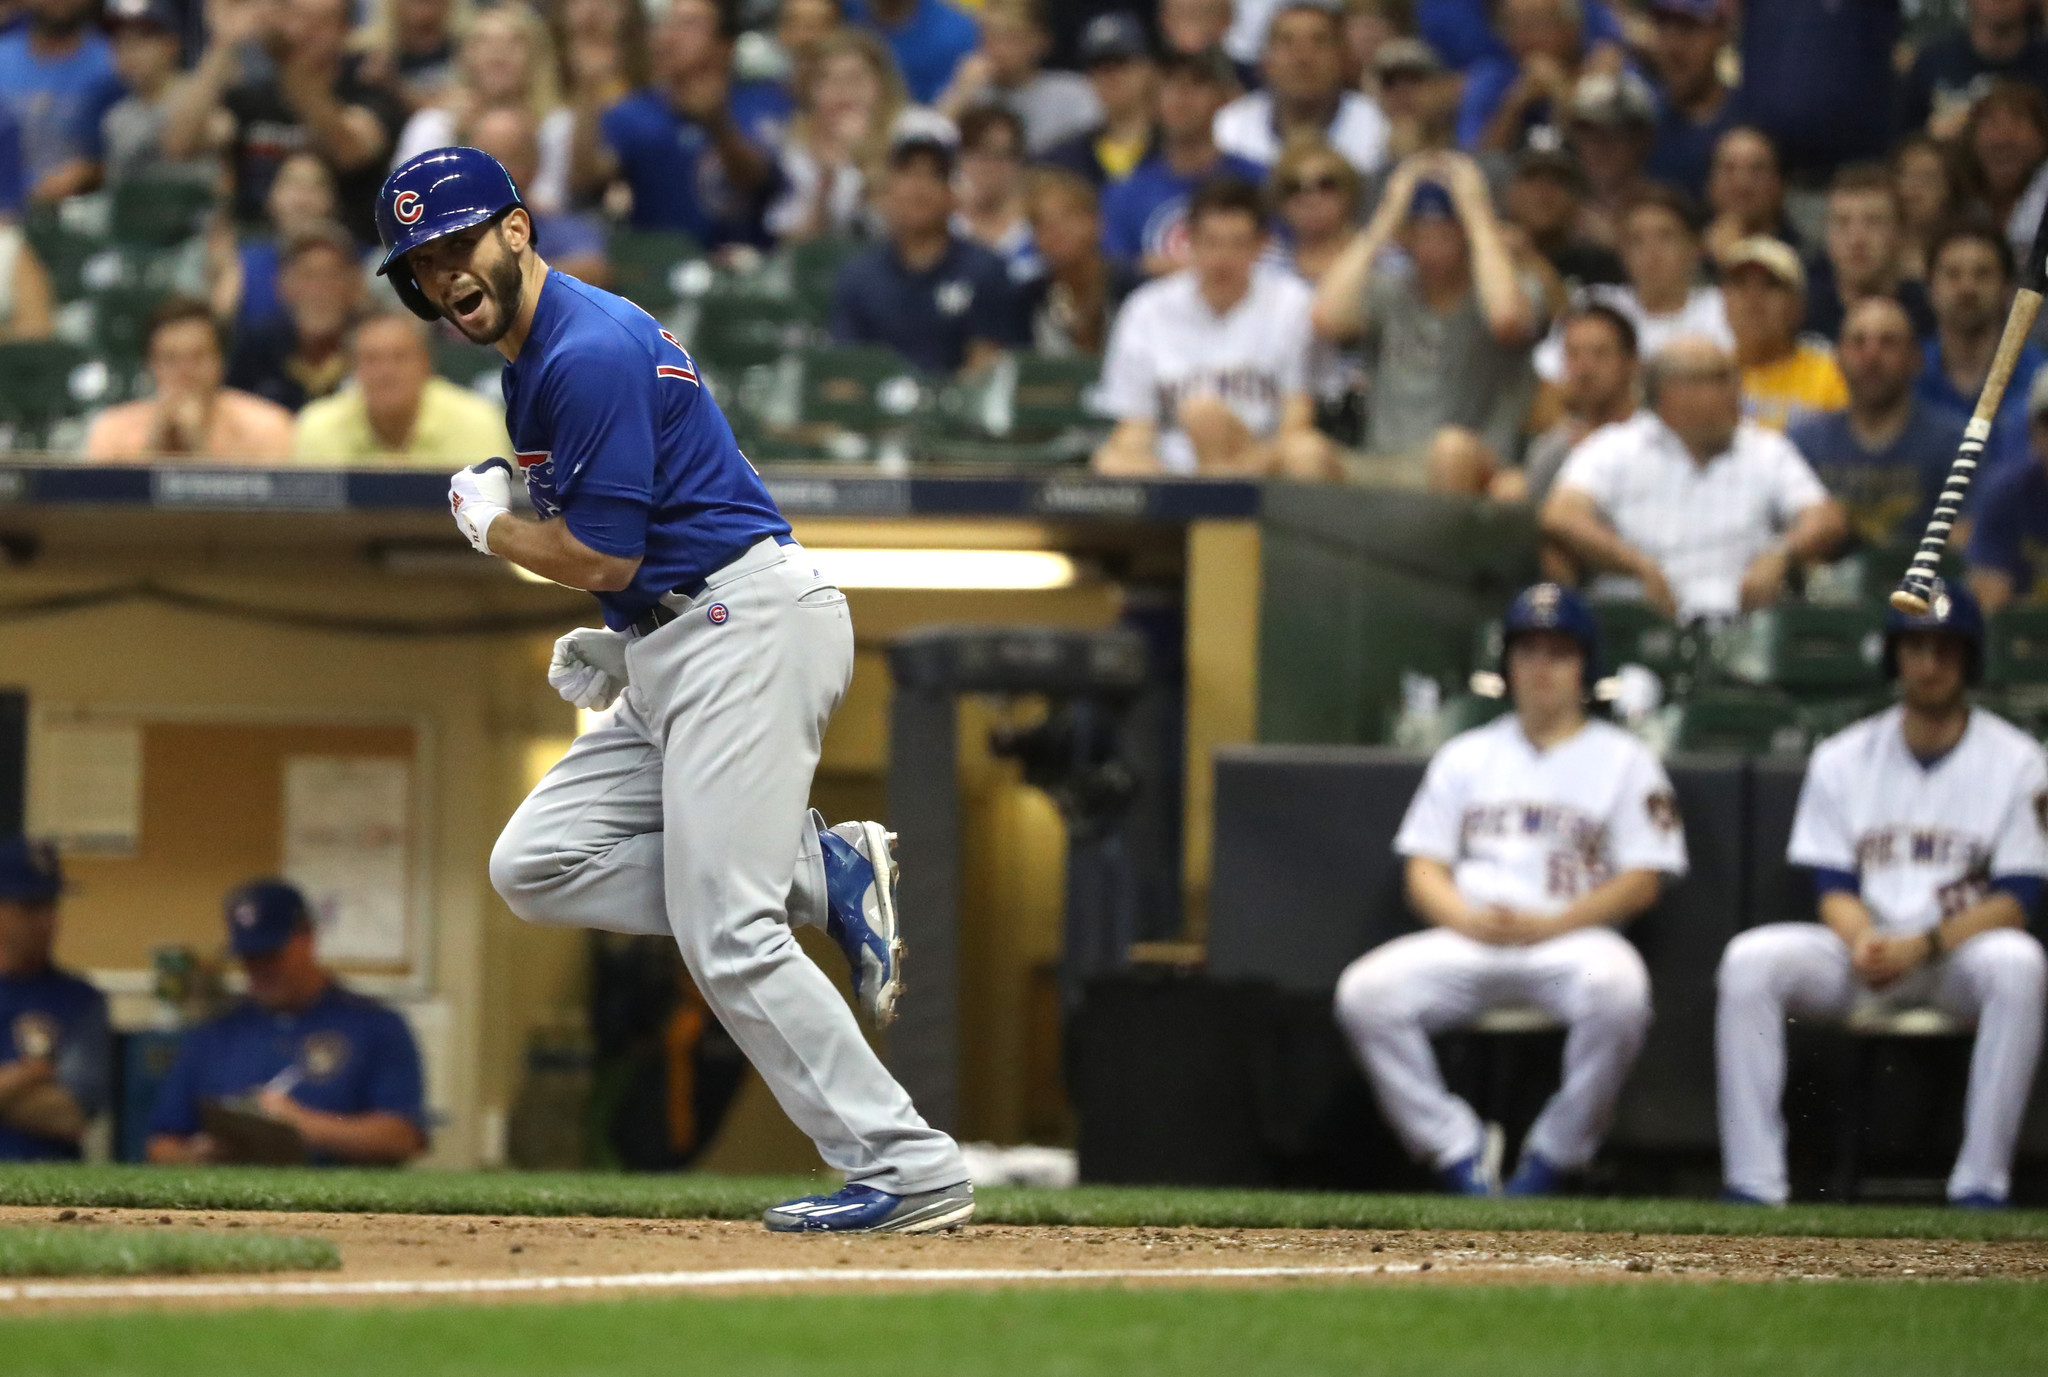 Ct-cubs-brewers-spt-0923-20170922